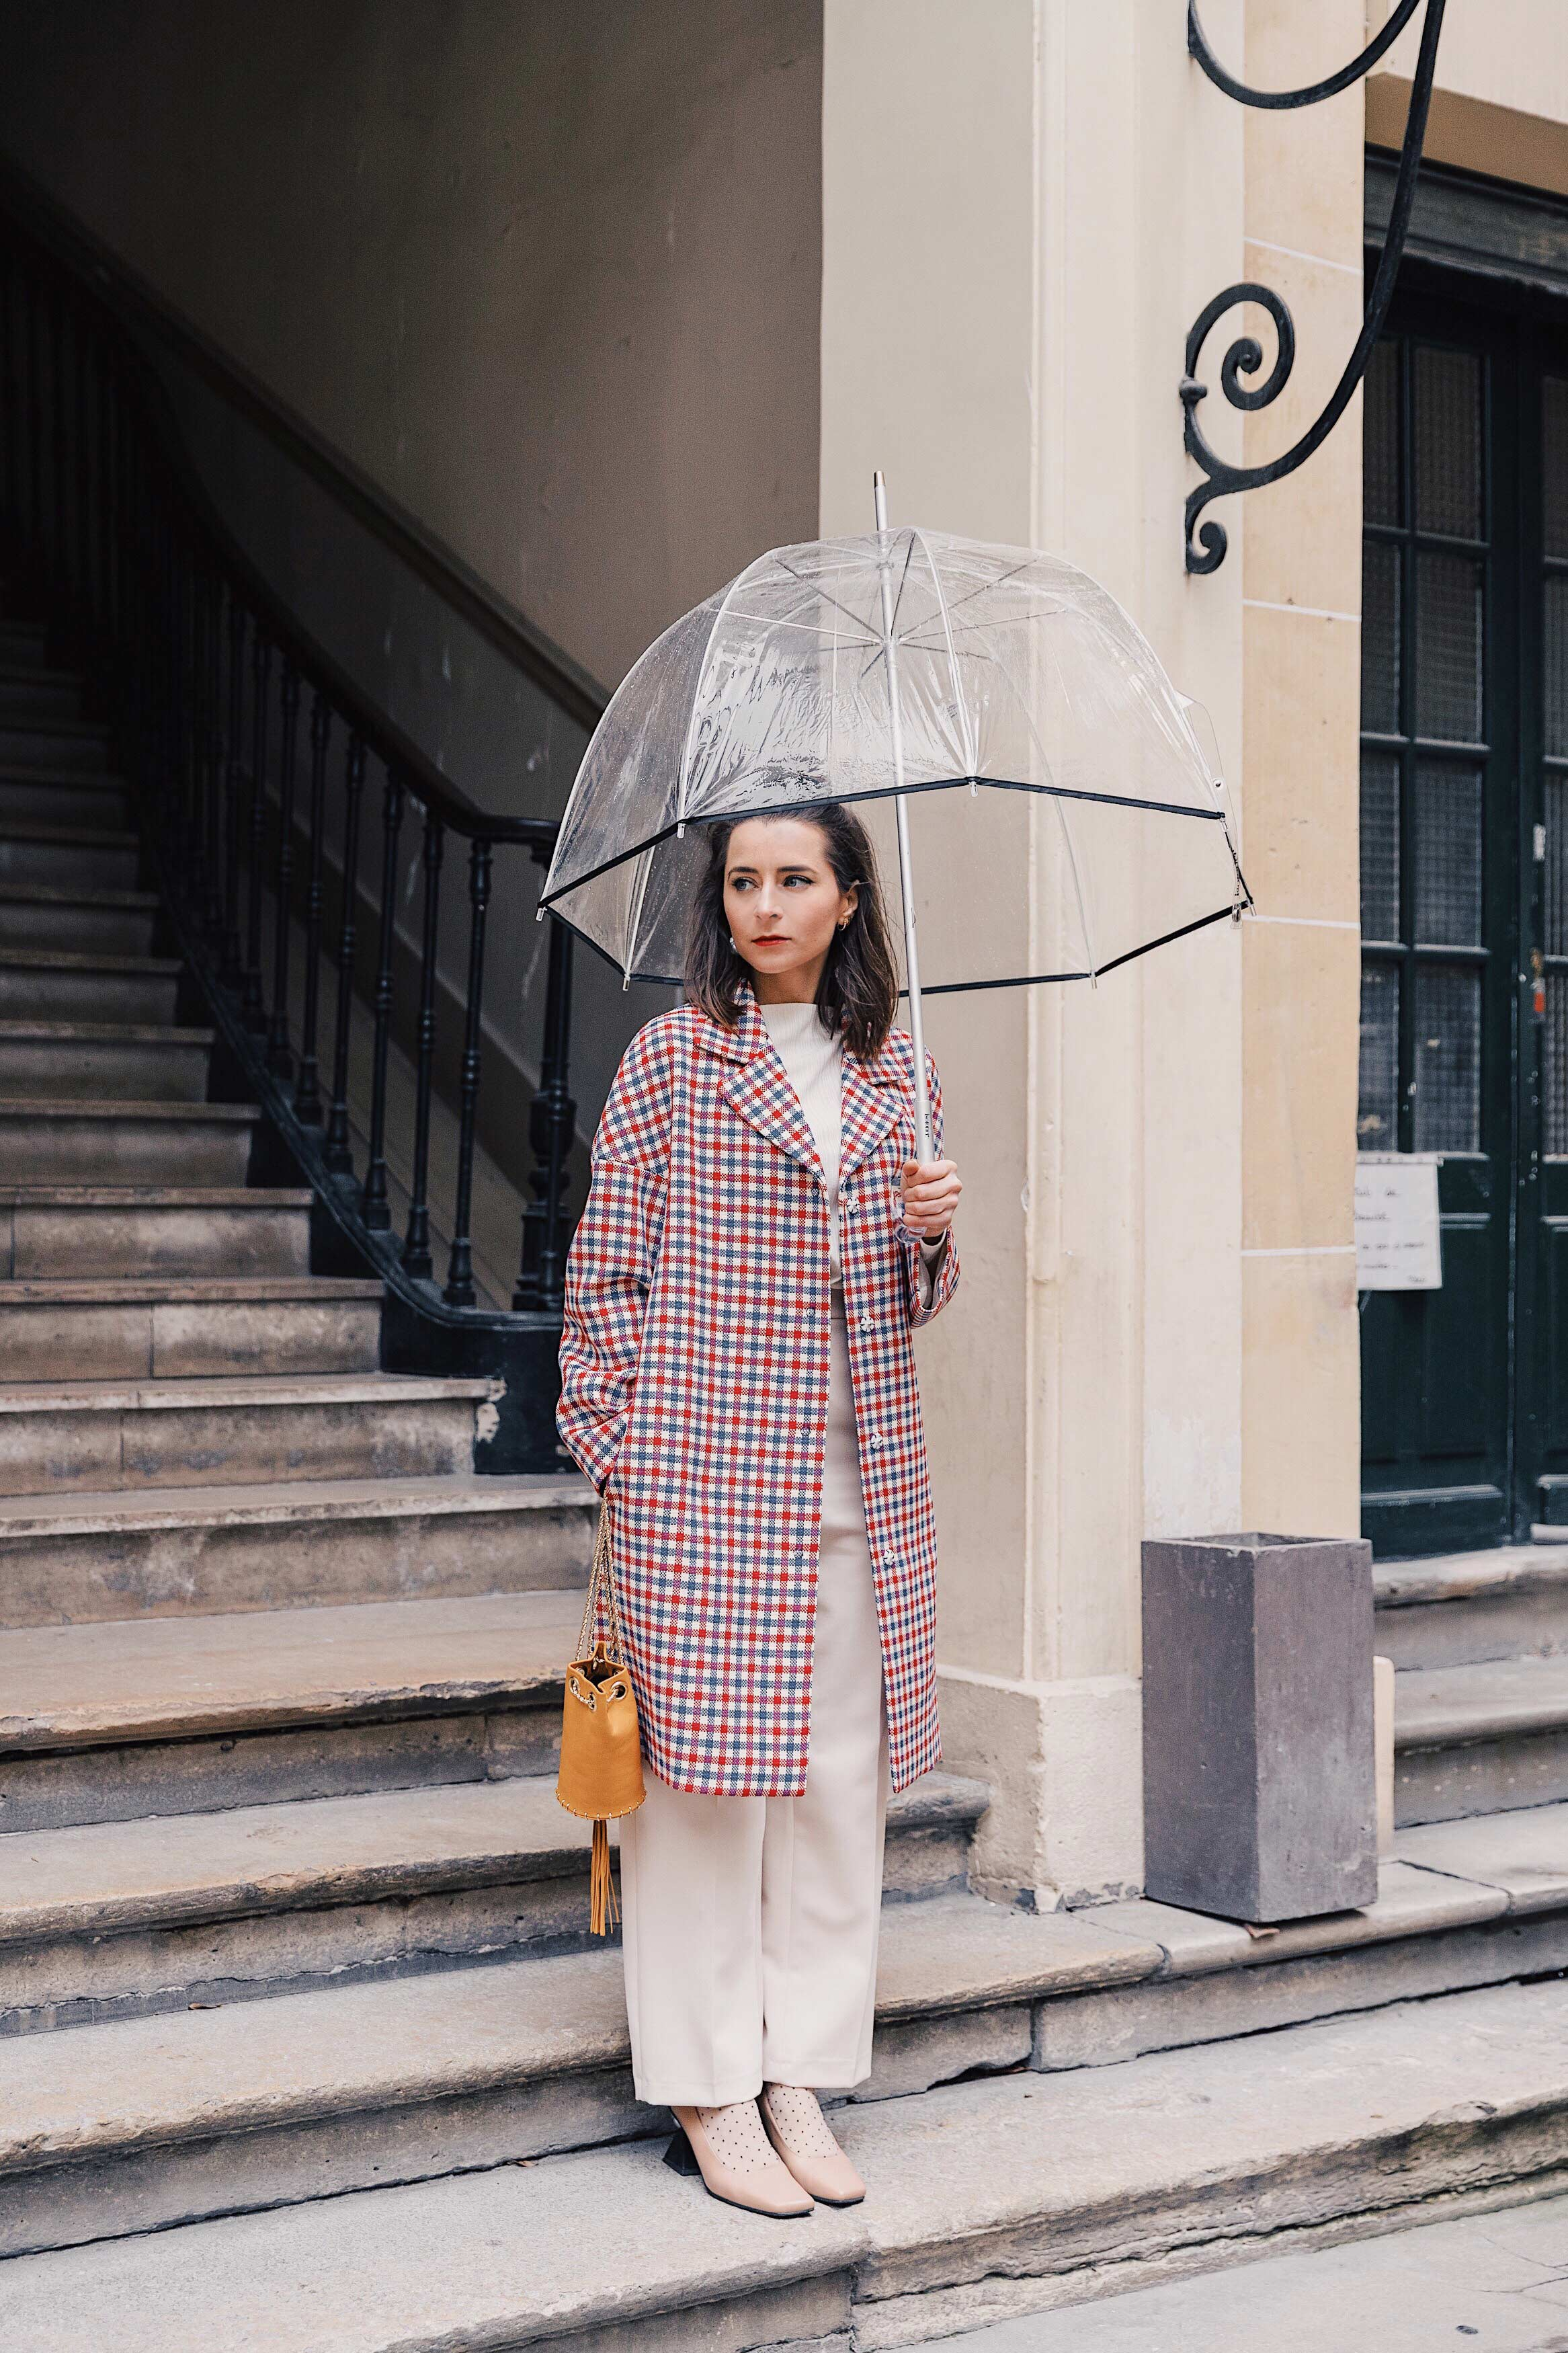 Issey Miyake Best Street Style Fashion Week Mars 2019 Julia Comil / French Fashion Blogger in Los Angeles Outfit for PFW Fall Winter 2019 show - red checked coat tara jarmon, pants tara jarmon, shoes Yuul Yie, Bag Delafon Paris